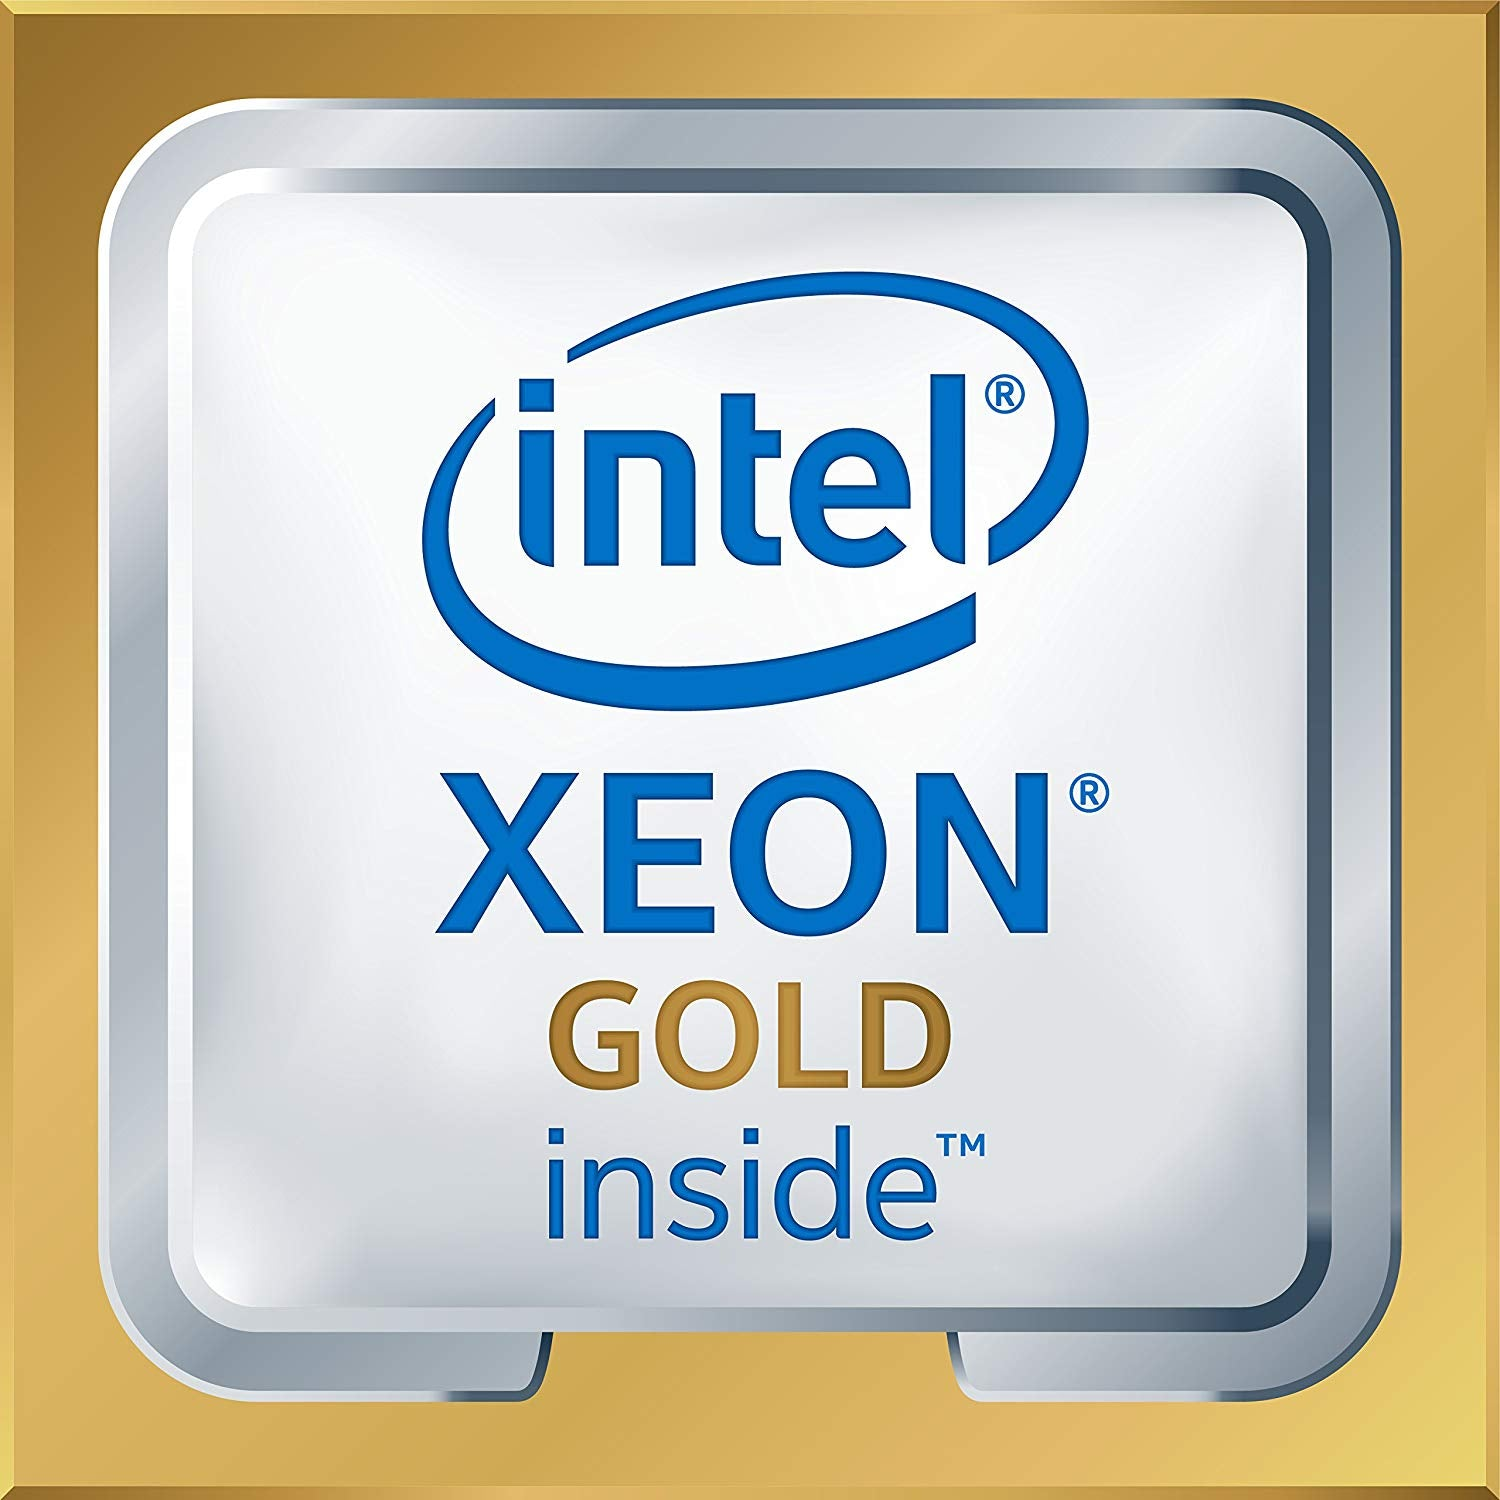 Intel Xeon Gold 6152 2.10GHz 22-Core 10.40GT/s UPI 30.25MB L3 Cache Socket LGA3647 (SR3B4) Server Processor